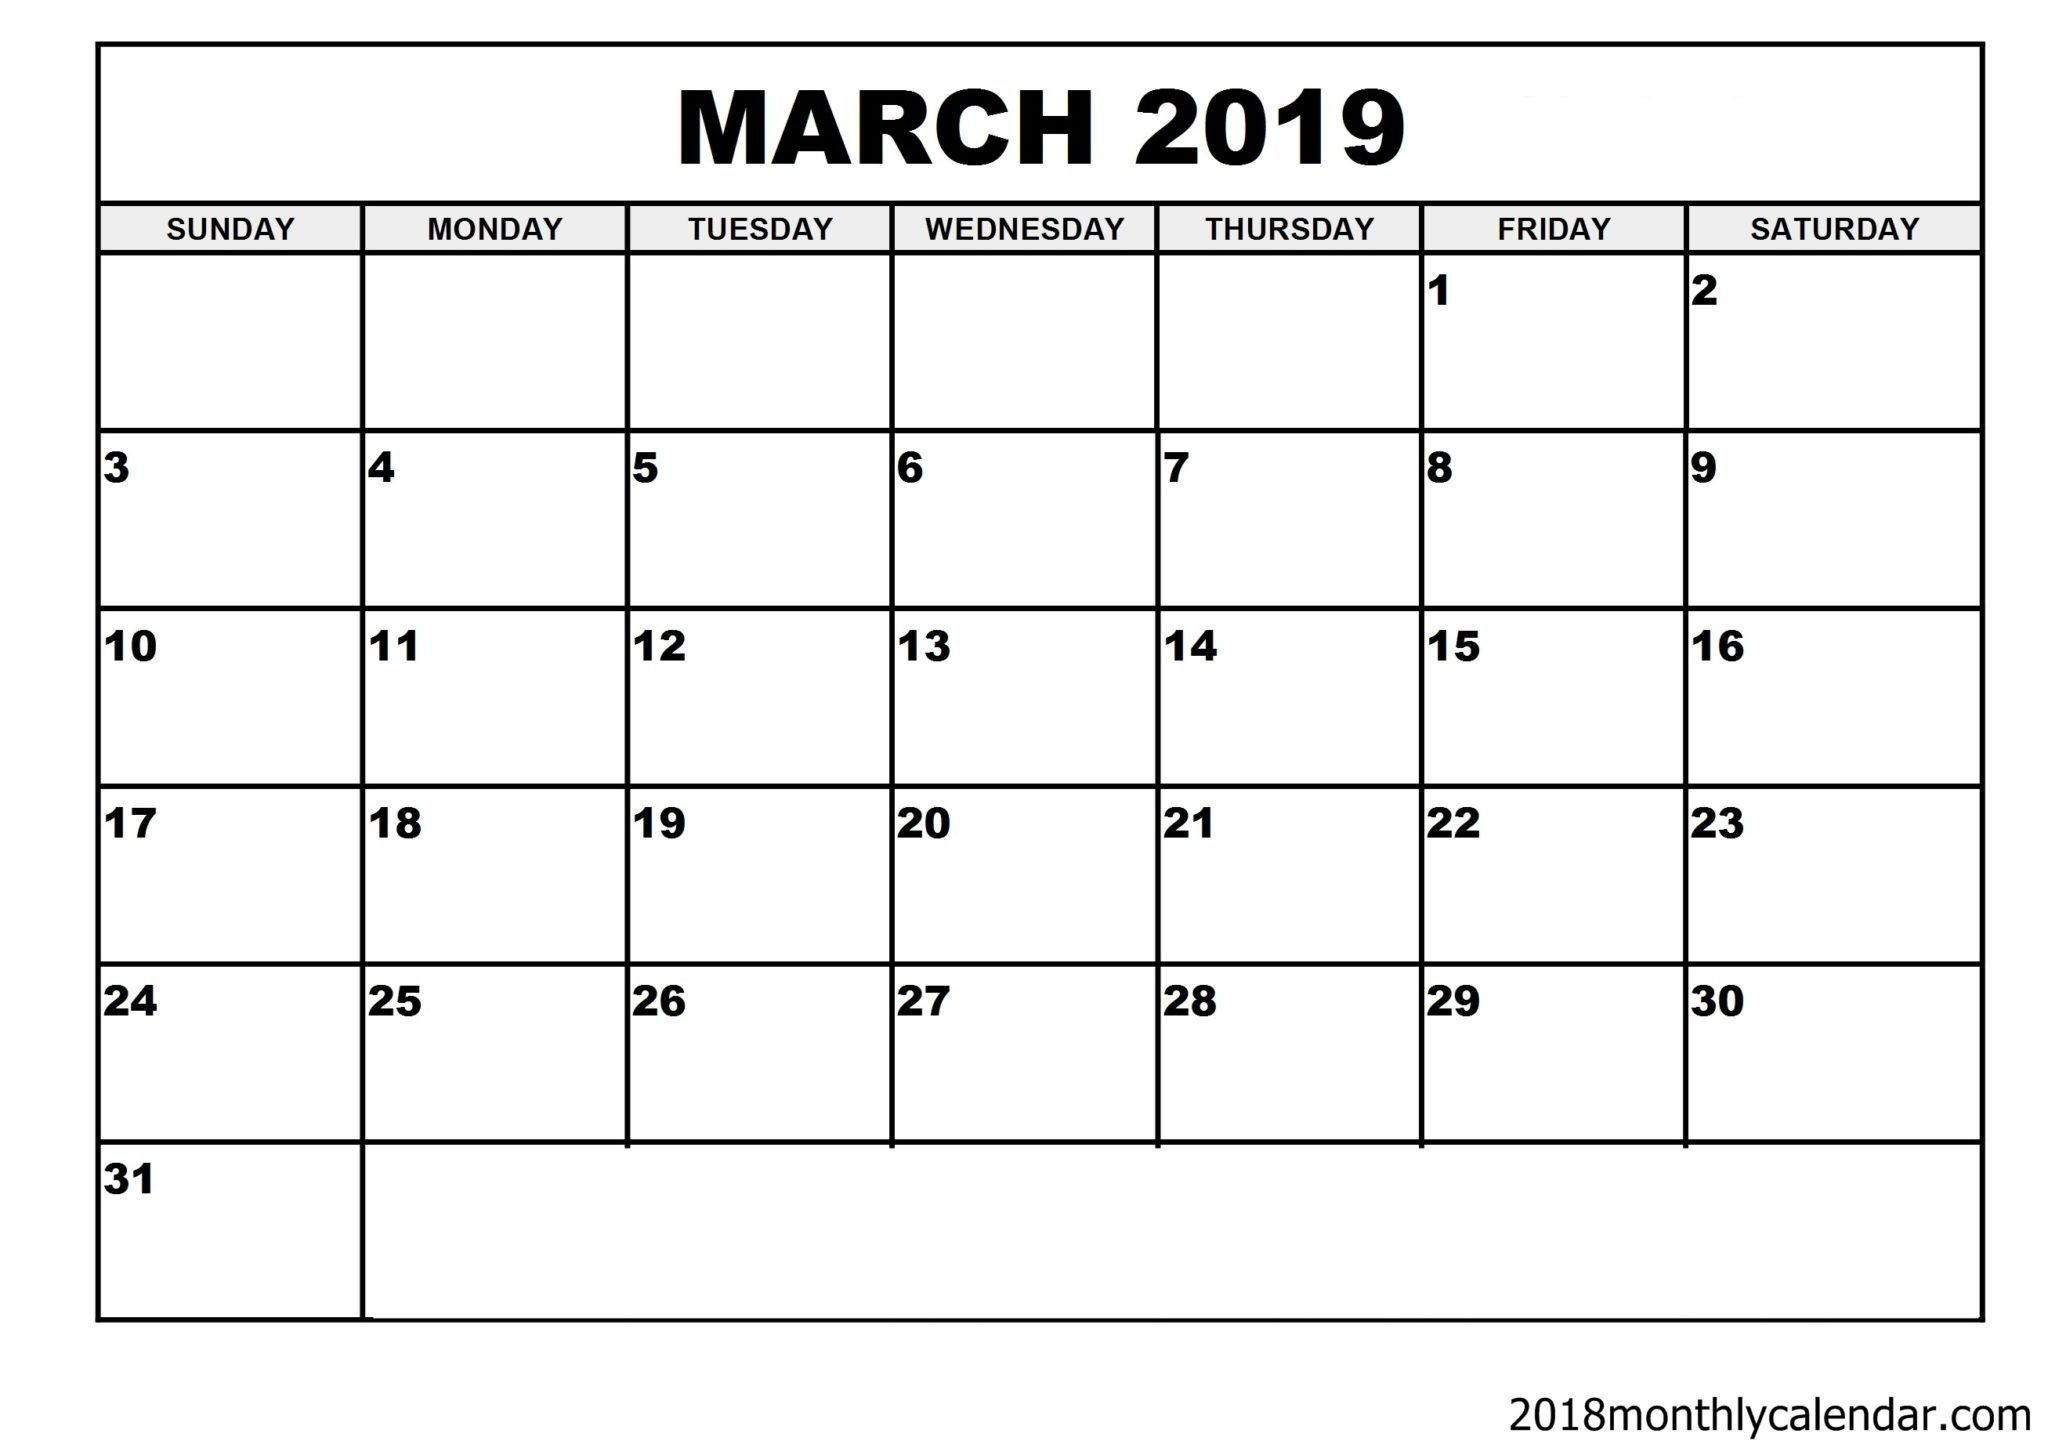 Blank Monthly Calendar Template Pdf Download March 2019 Calendar – Blank Template Editable